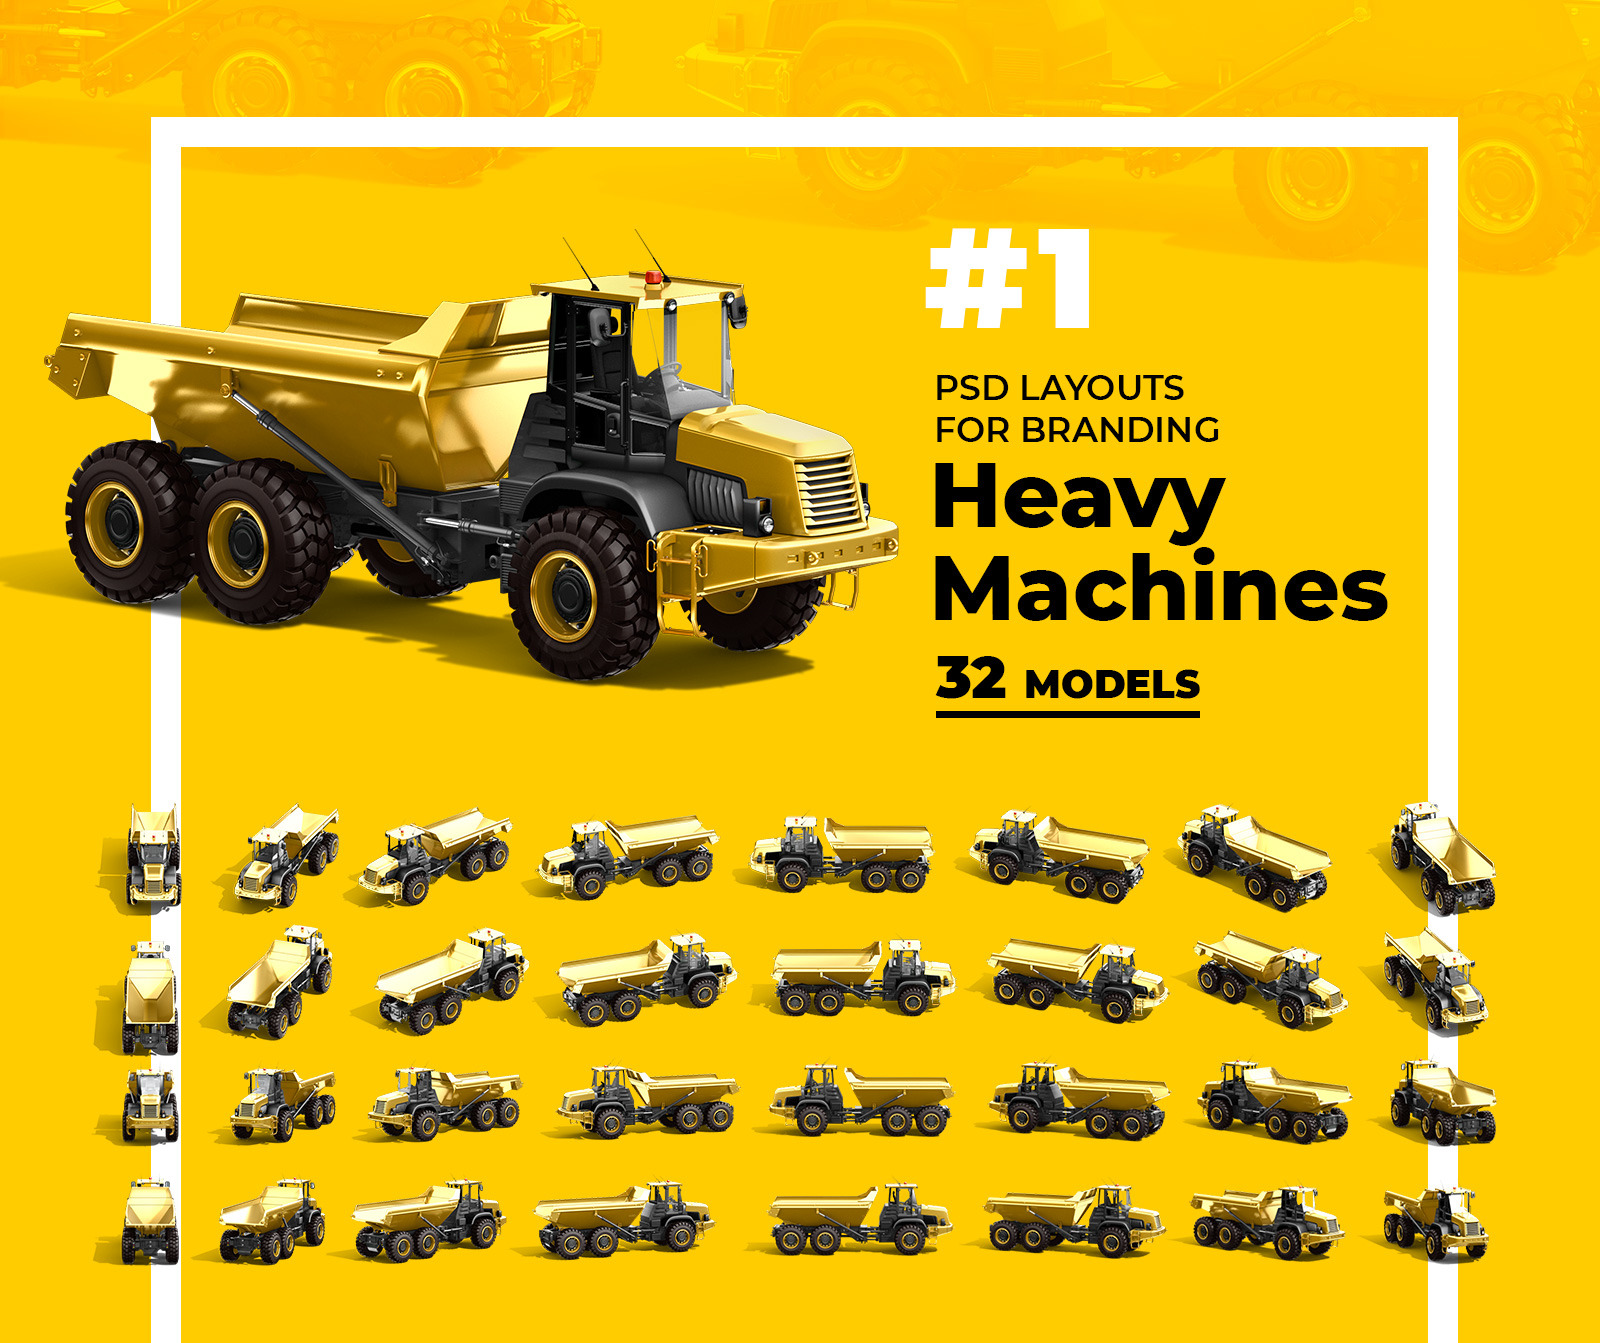 PSD Mockup 3D model Heavy Machines - Dump Truck #1